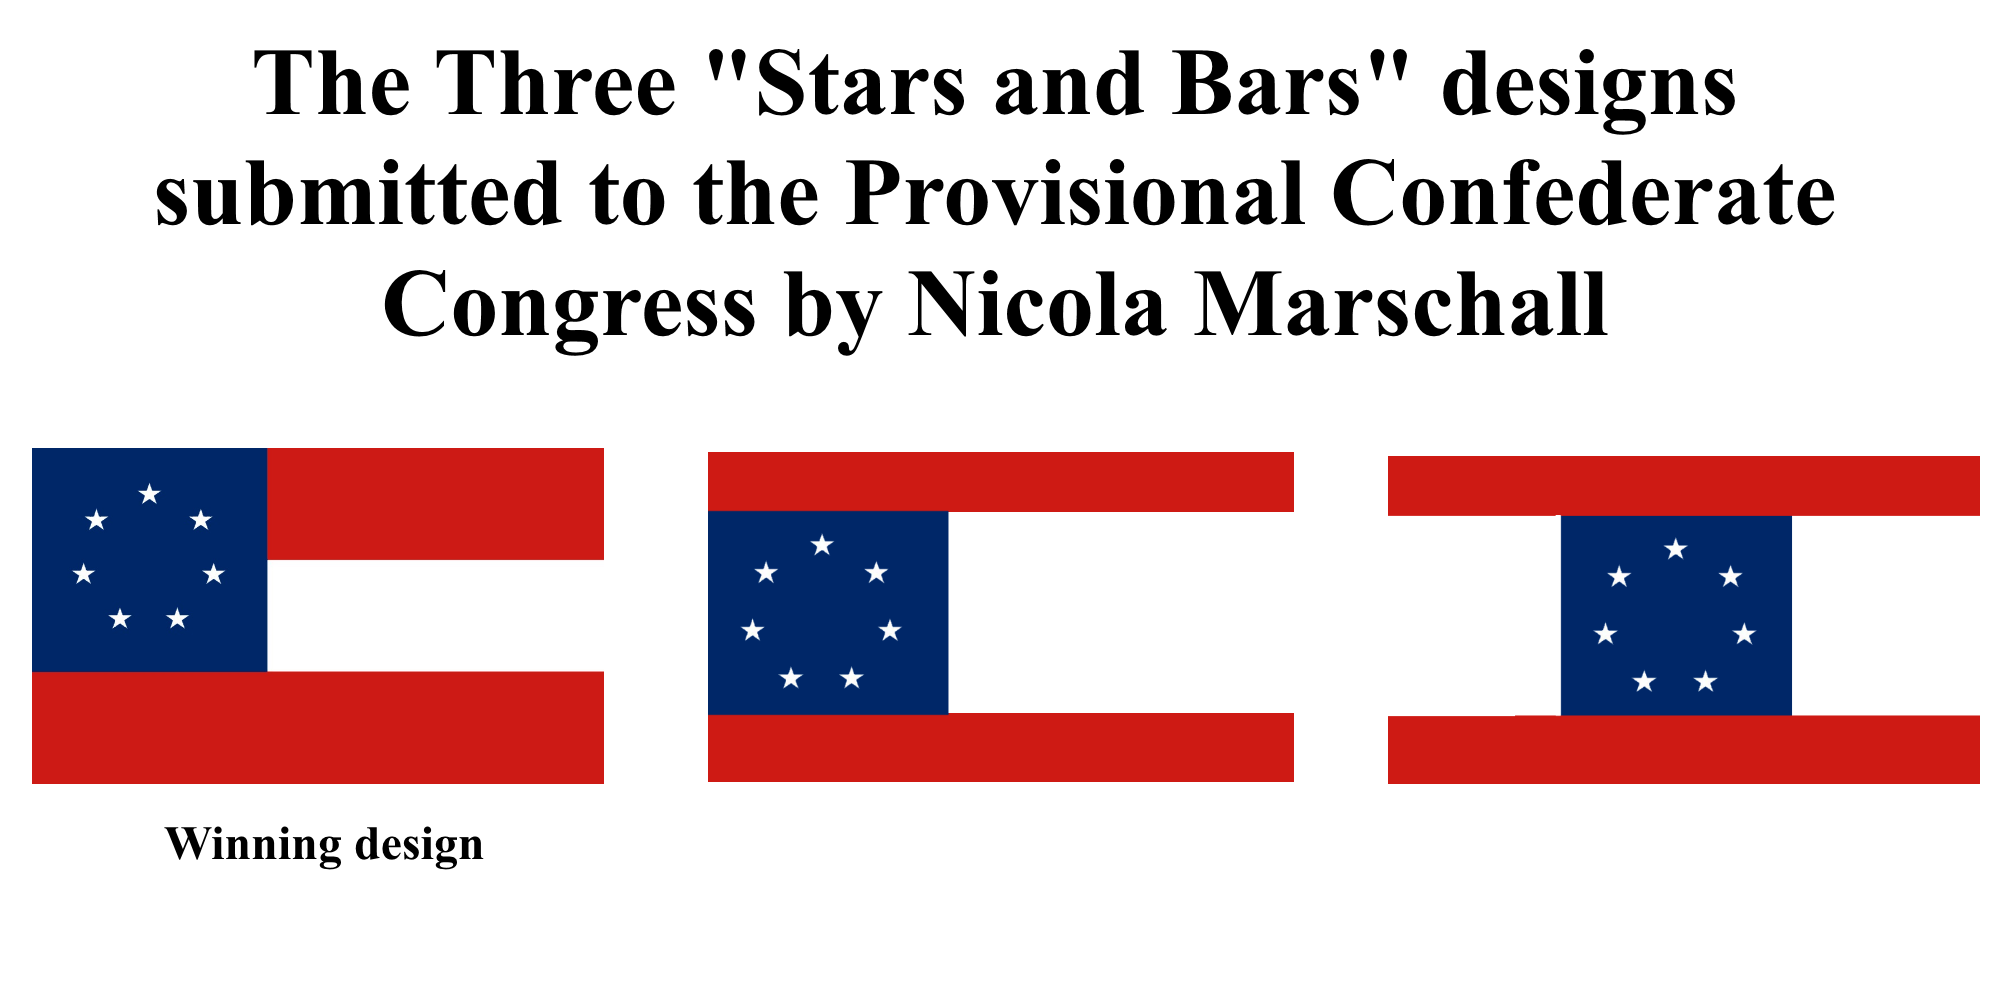 Nicola Marschall S 3 Stars And Bars Designs Bar Design Company Logo Tech Company Logos